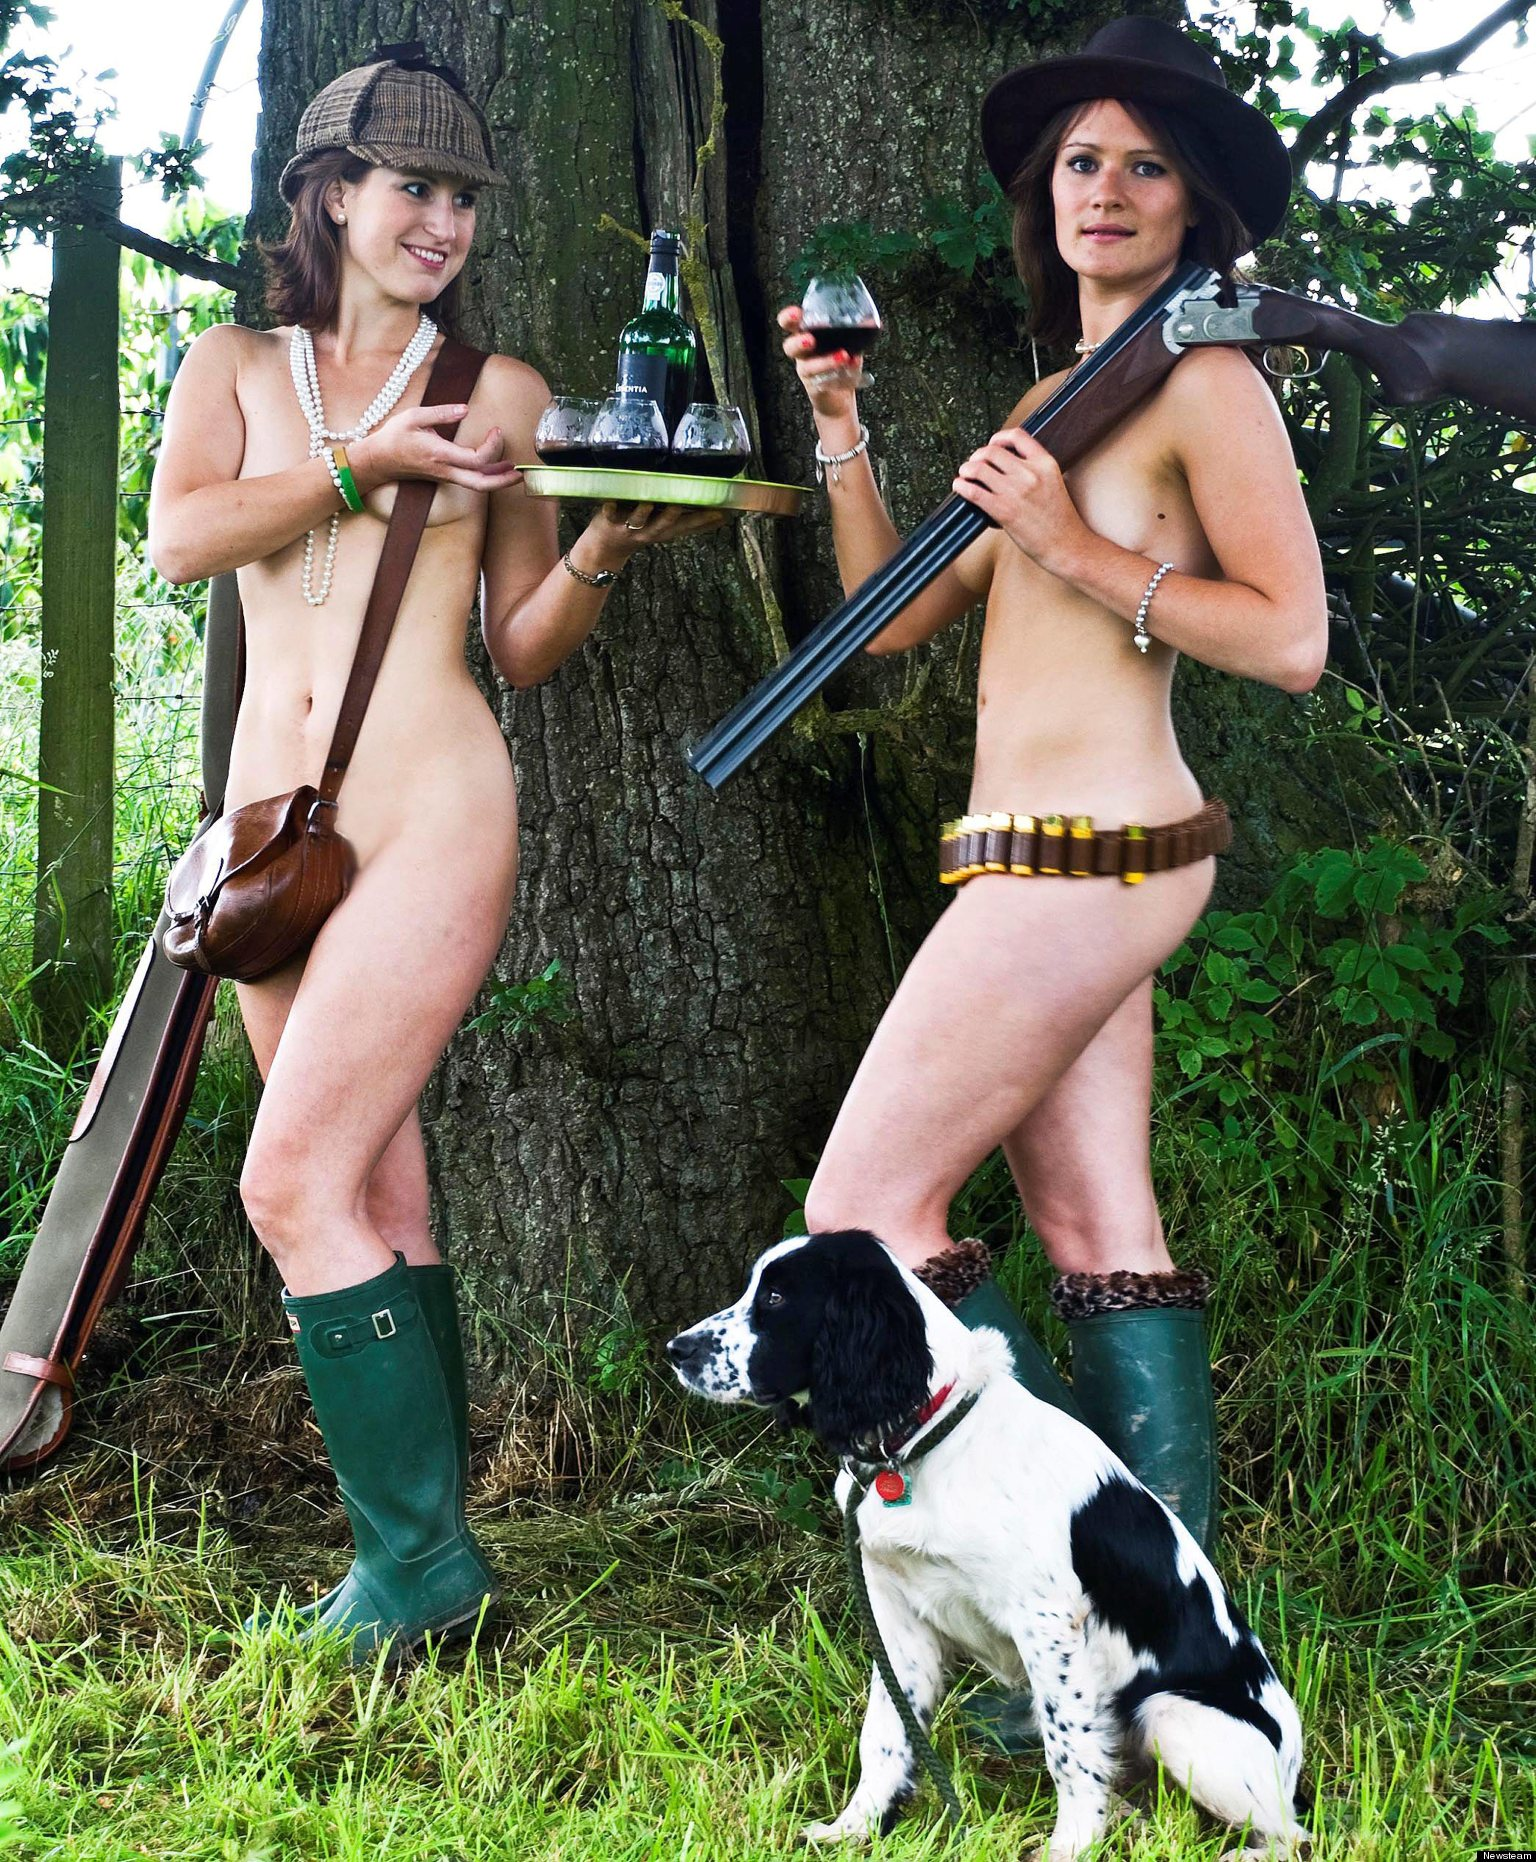 from Ronan naked country girl hotties